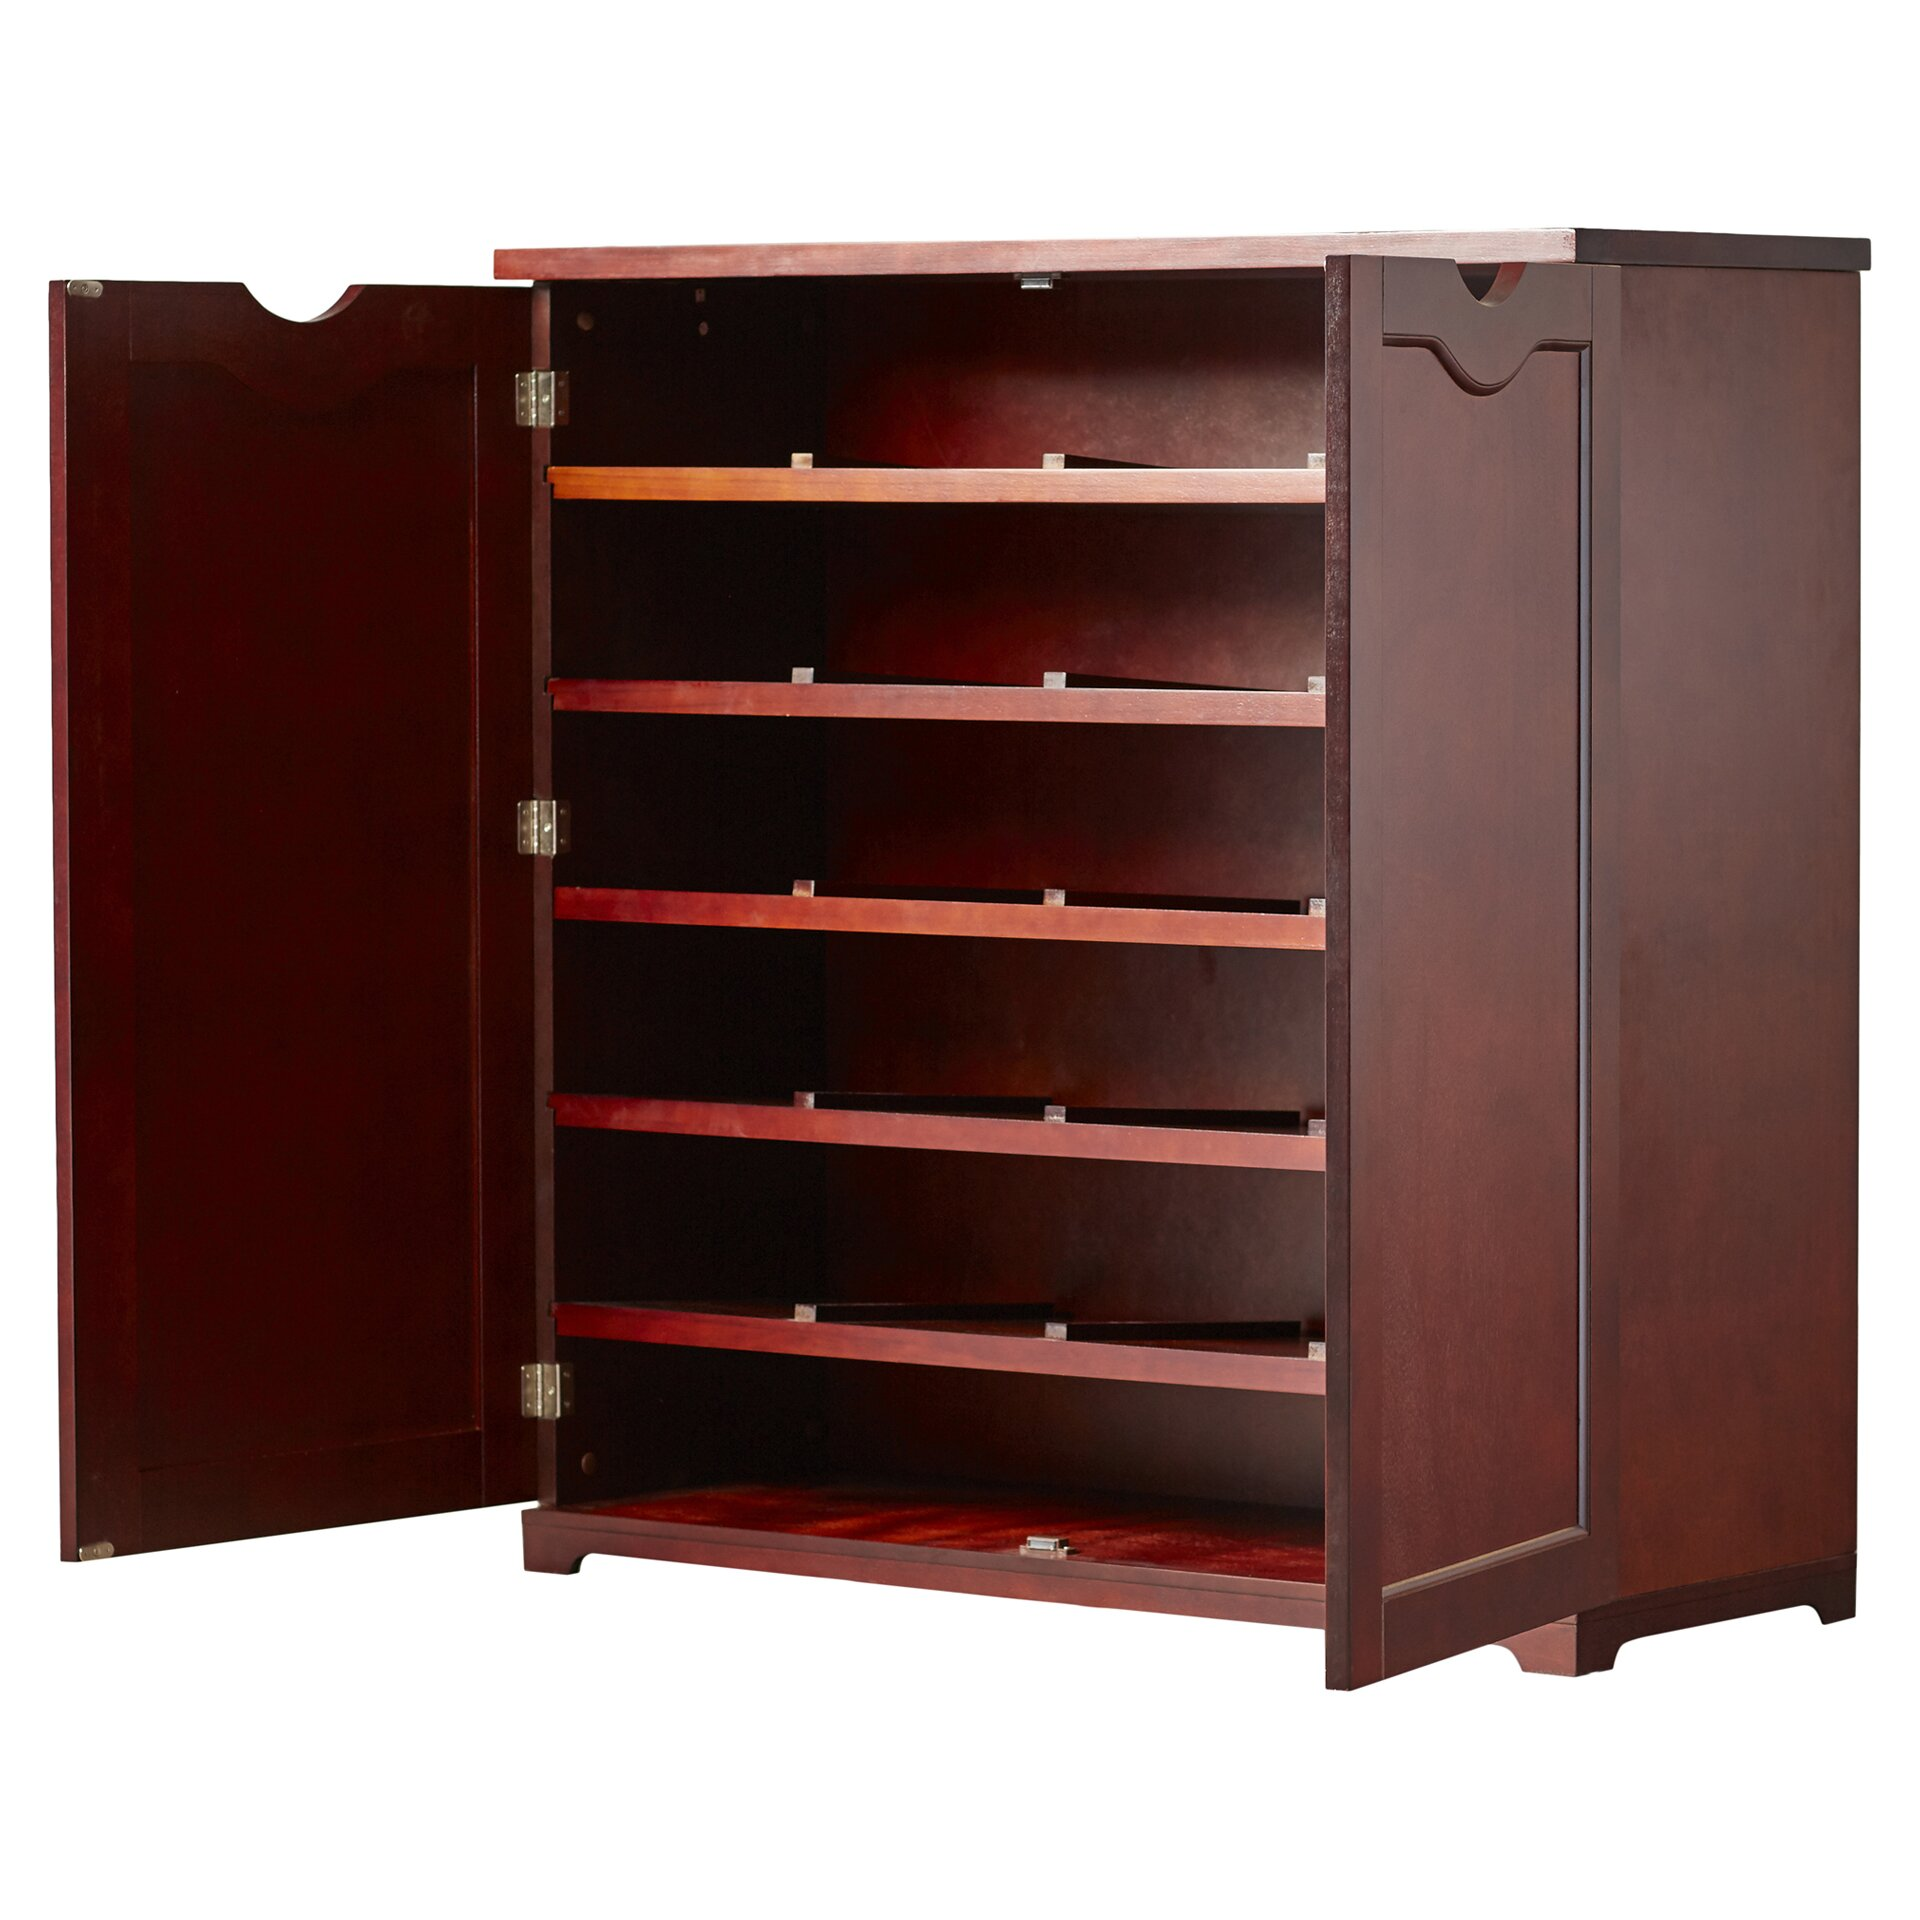 Home Depot Cabinets Review: Charlton Home Barre 38-Pair Shoe Storage Cabinet & Reviews